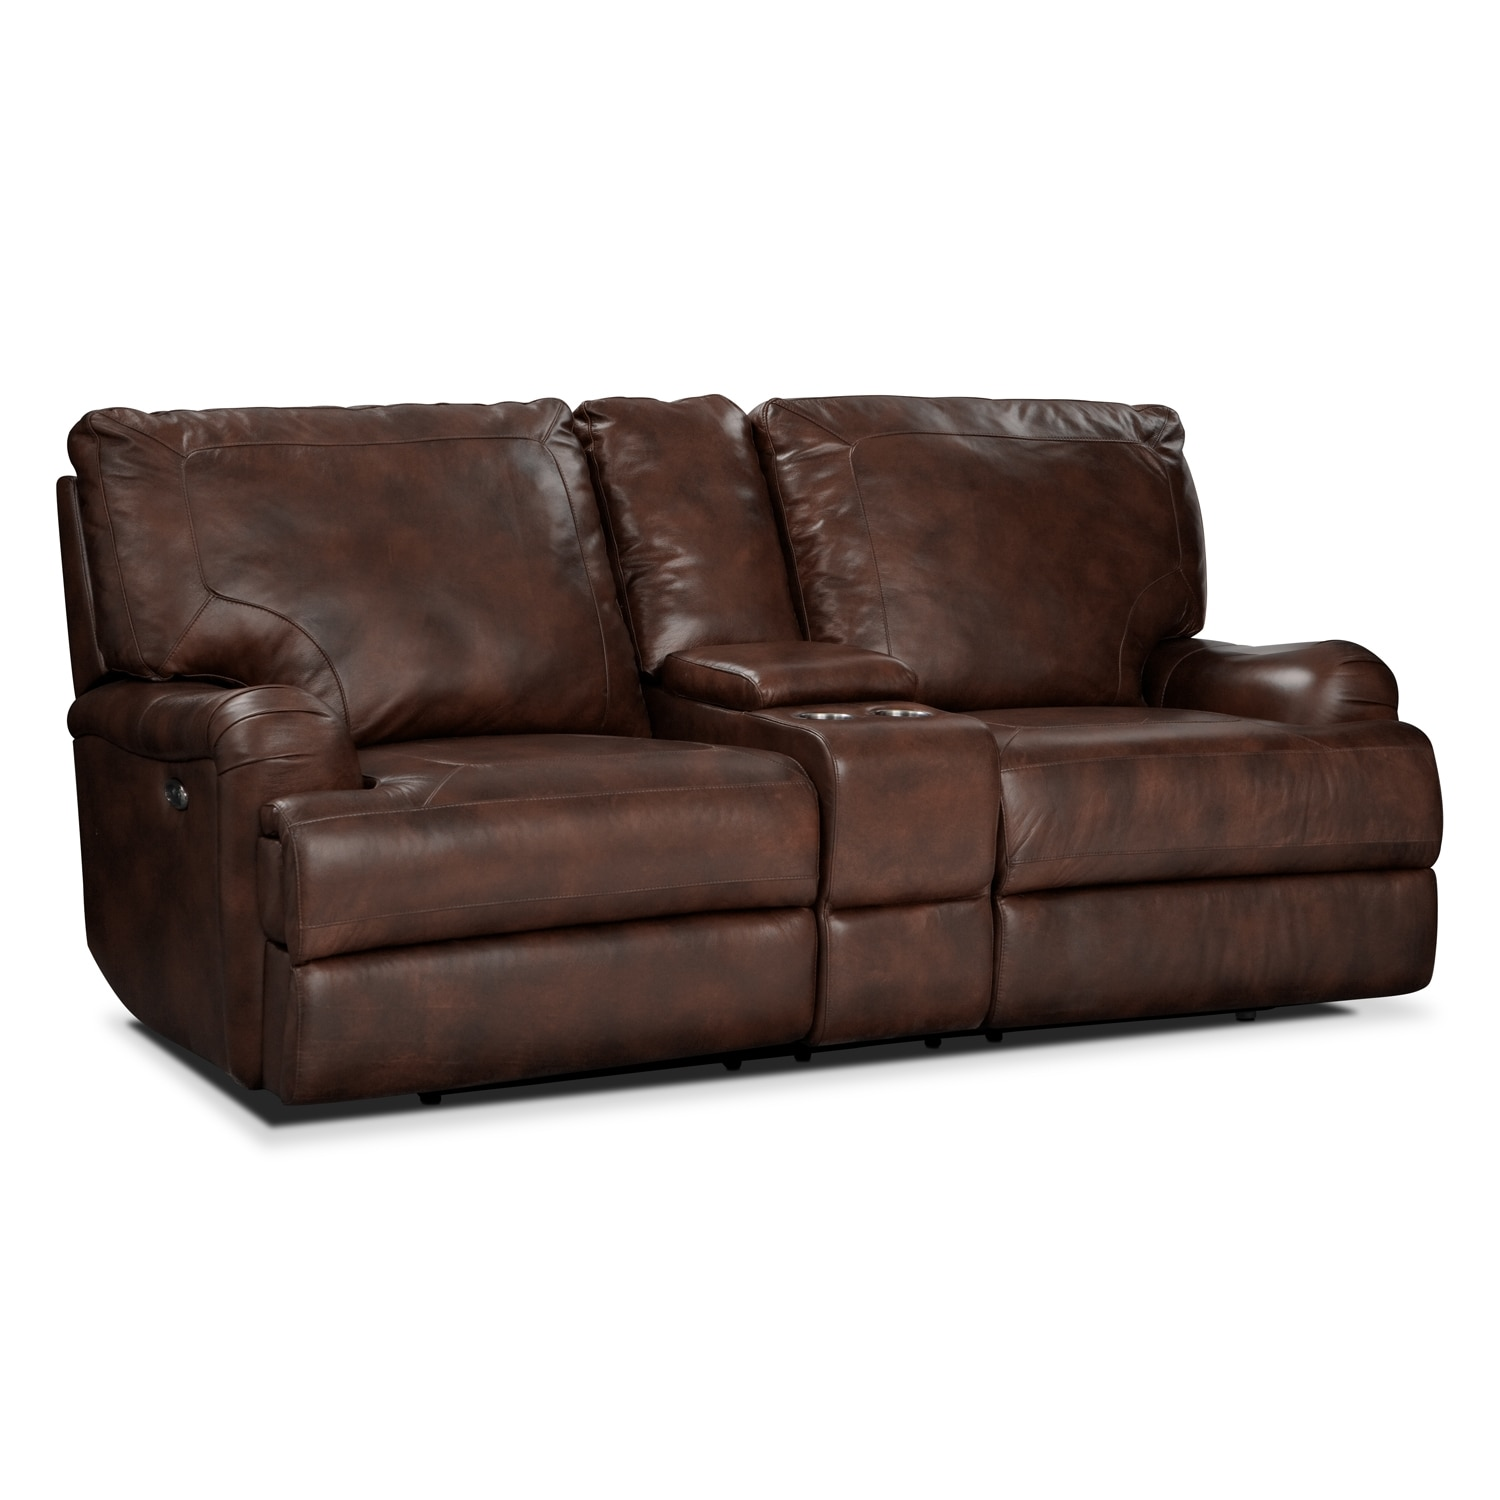 Kingsway Power Reclining Loveseat with Console - Brown | Value City Furniture  sc 1 st  Value City Furniture : power reclining loveseats with console - islam-shia.org